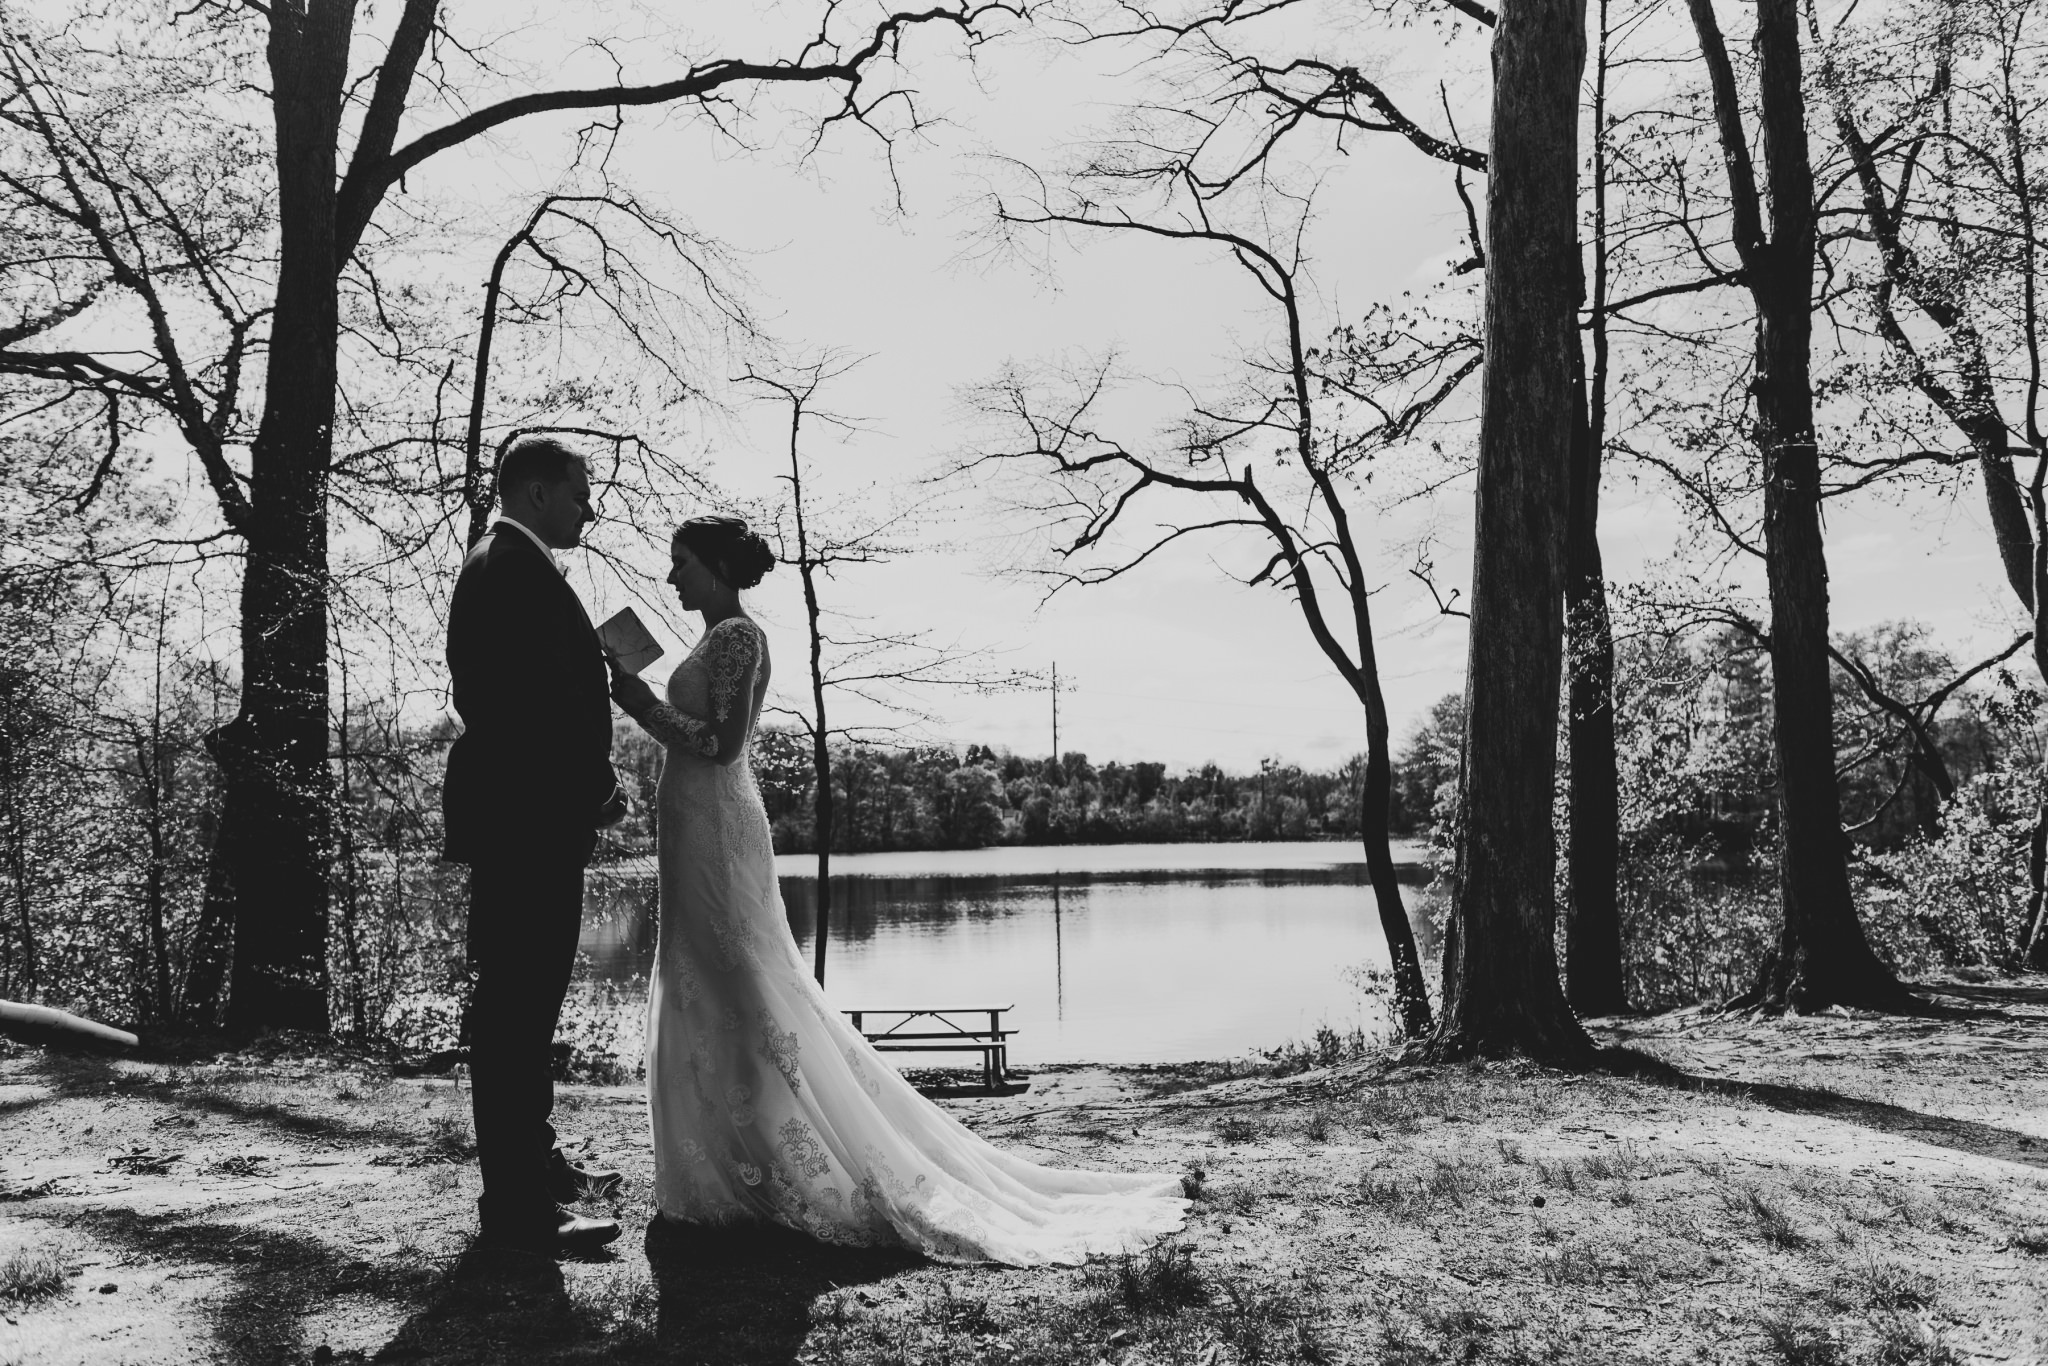 The theme of this wedding was definitely the amazing silhouettes. Here, Luke and Kelly are doing a private reading of their vows, just sharing a moment before their ceremony.